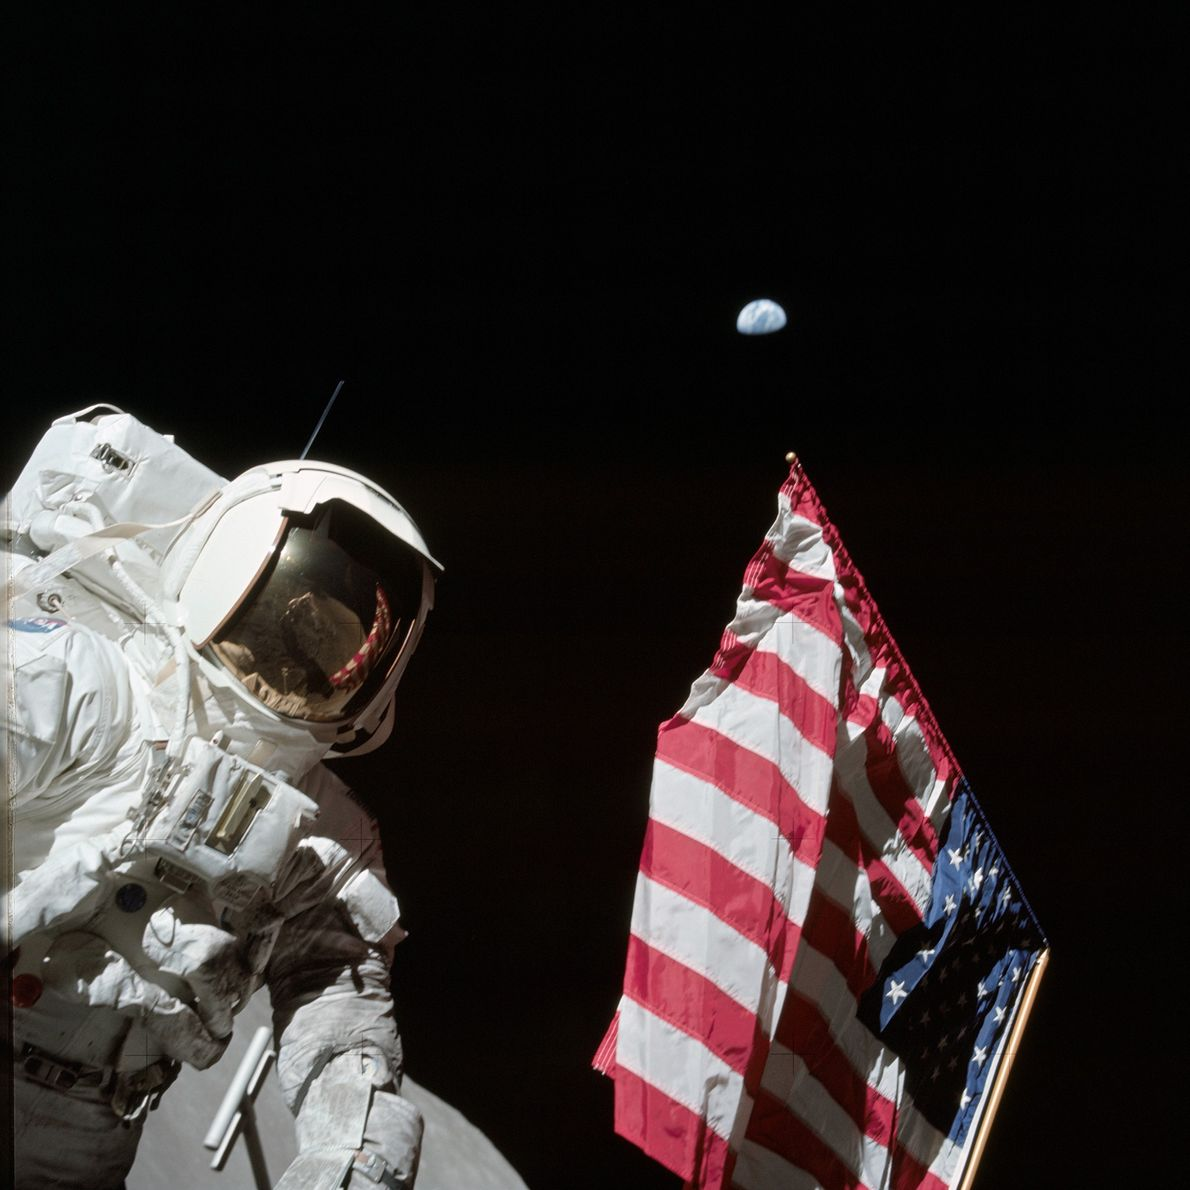 Apollo 17 astronaut Harrison H. Schmitt stands next to a United States flag during a moon ...